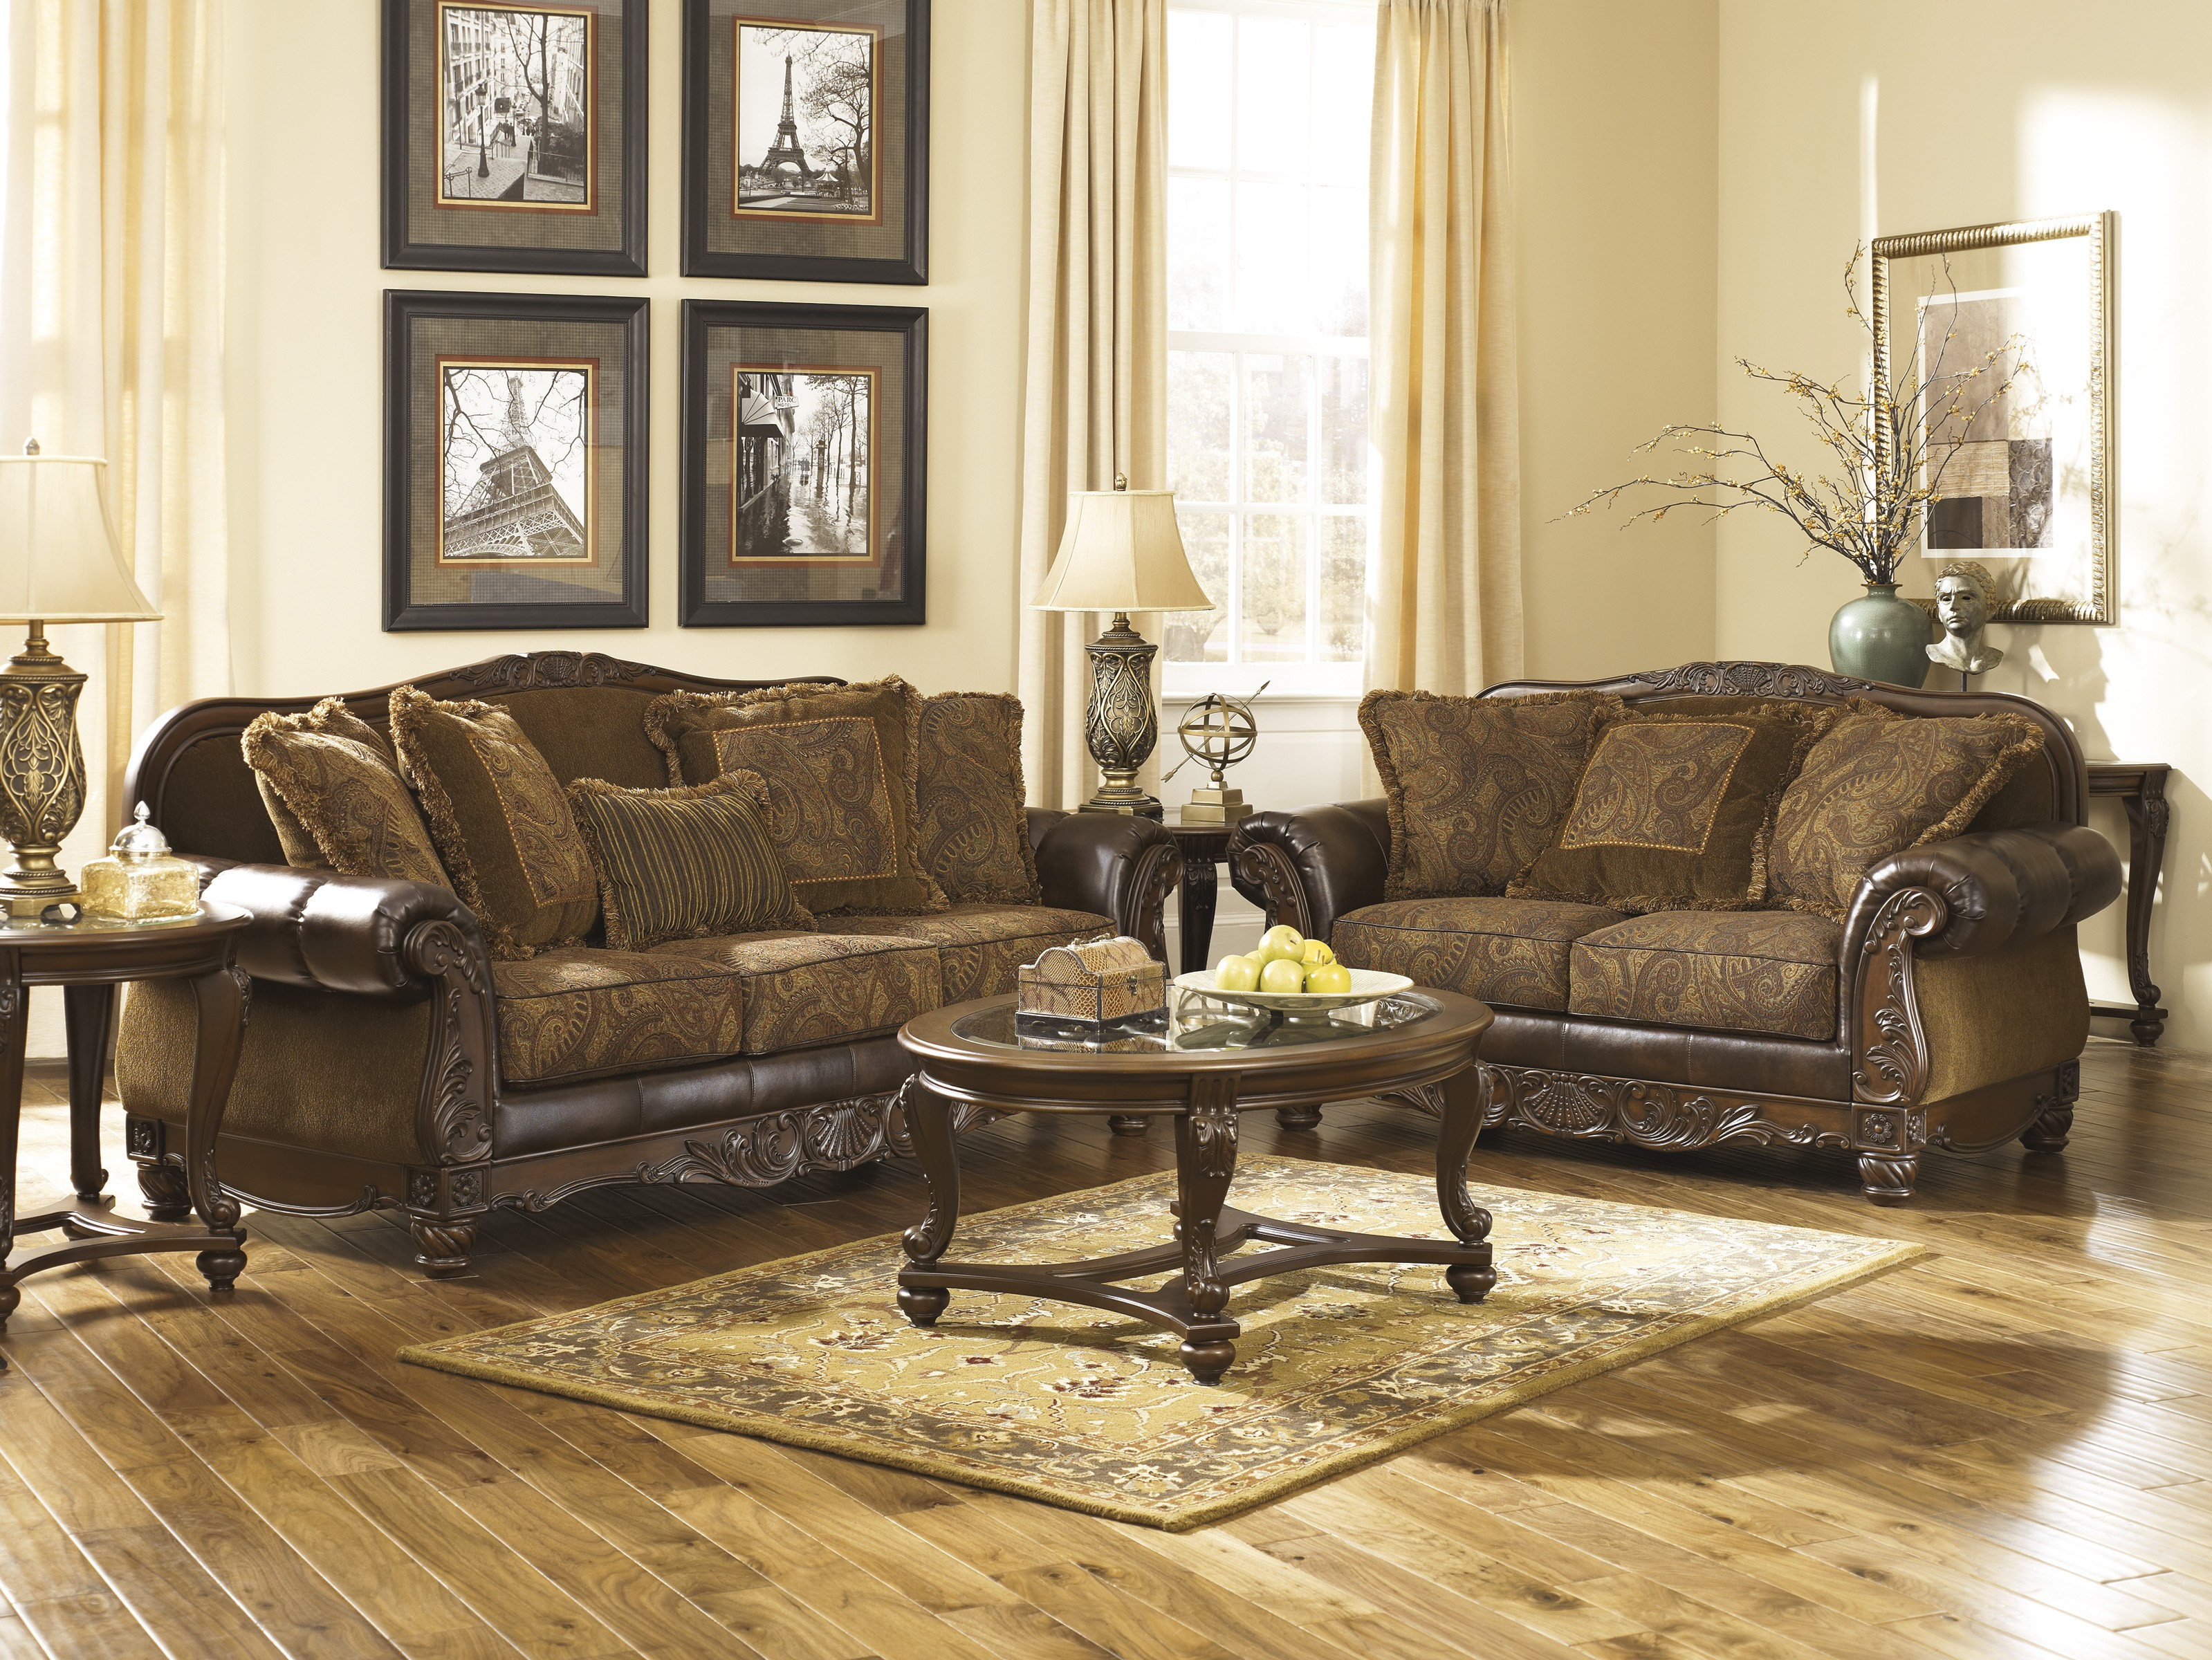 Cheap Furniture Stores in Maryland | Cheap Furniture Raleigh Nc | Bedcock Furniture